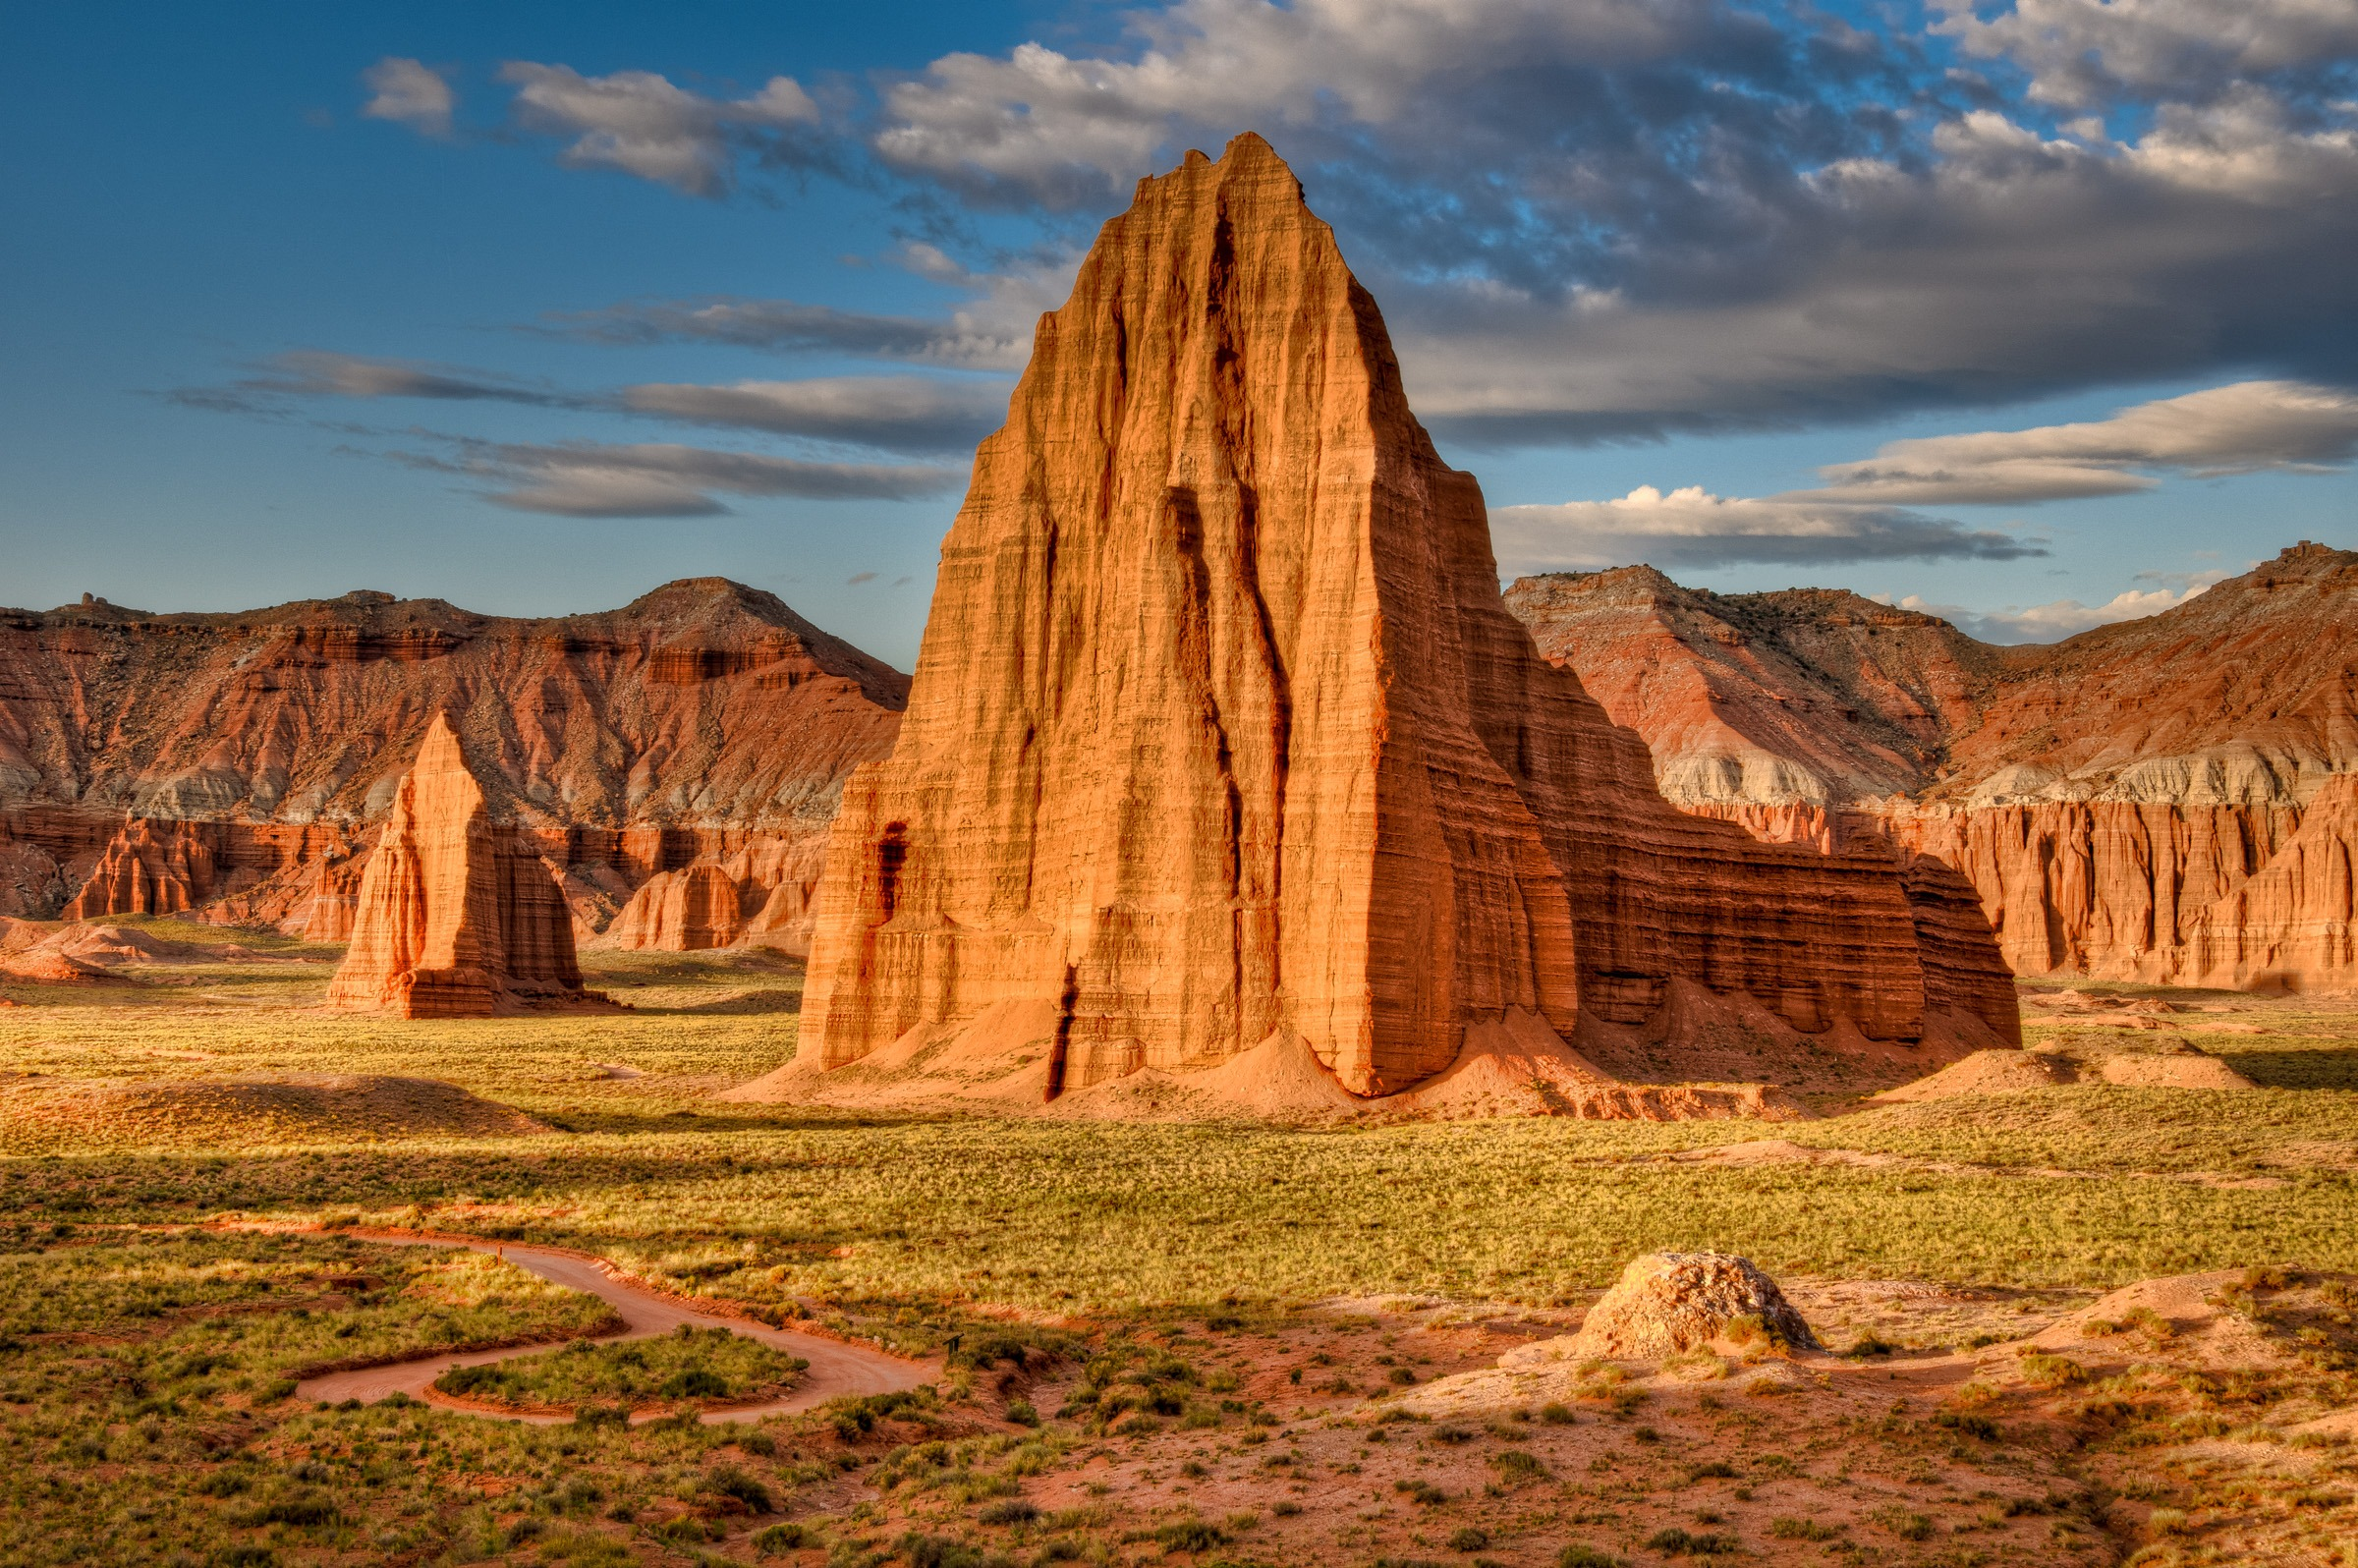 Temples of the Sun and Moon in the Cathedral Valley section of Capitol Reef National Park. The Temple of the Sun is the big one in the center. Also visible below and to the right is the dome of Glass Mountain.